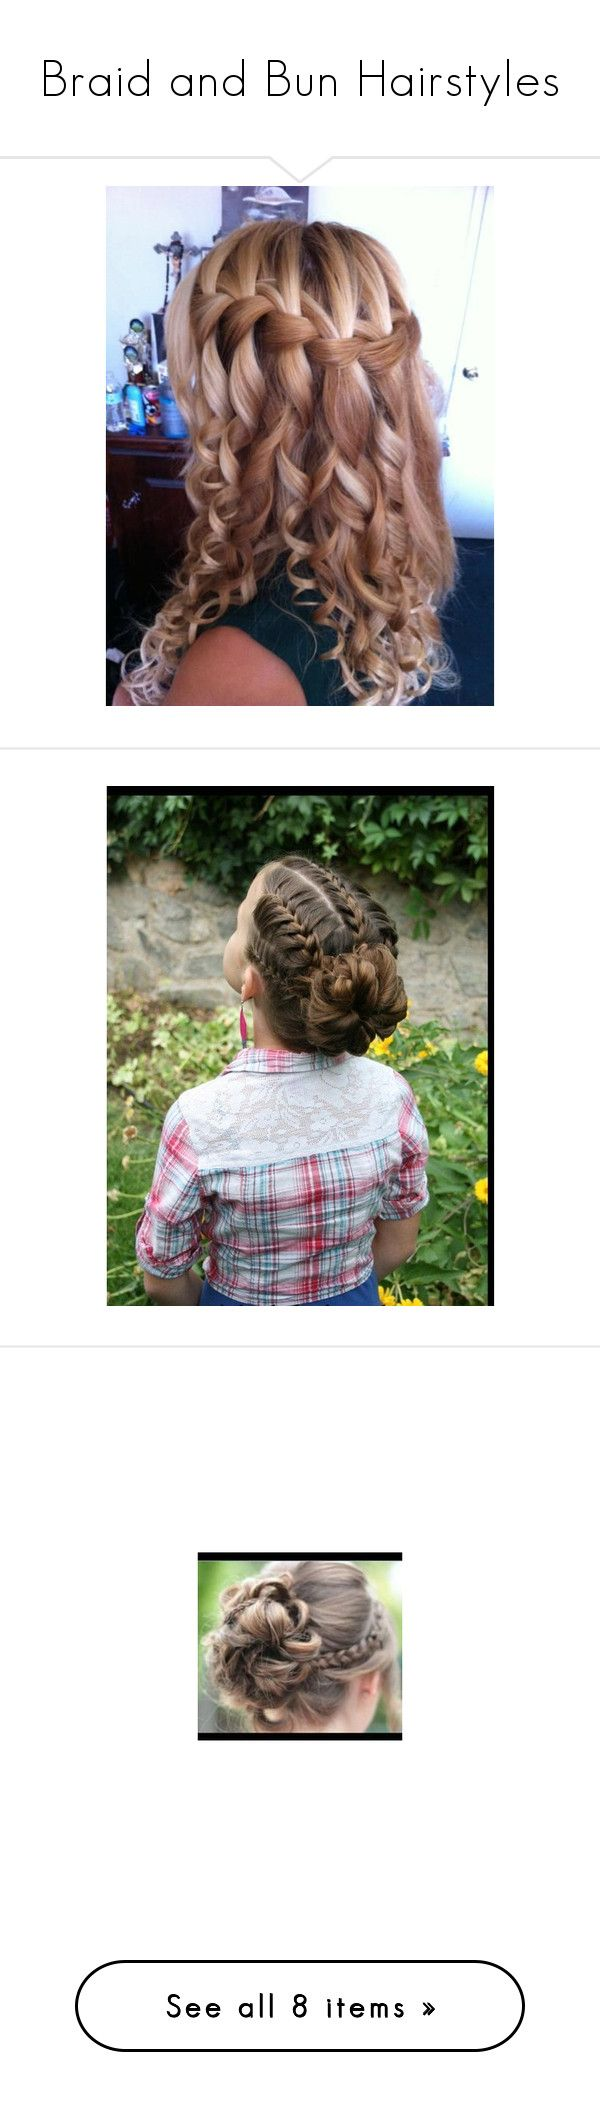 """""""Braid and Bun Hairstyles"""" by deeda-ferreira ❤ liked on Polyvore featuring hair, hairstyles, kids, hairstyles kids, beauty products, haircare, hair styling tools, cabelos, hair styles and pictures"""